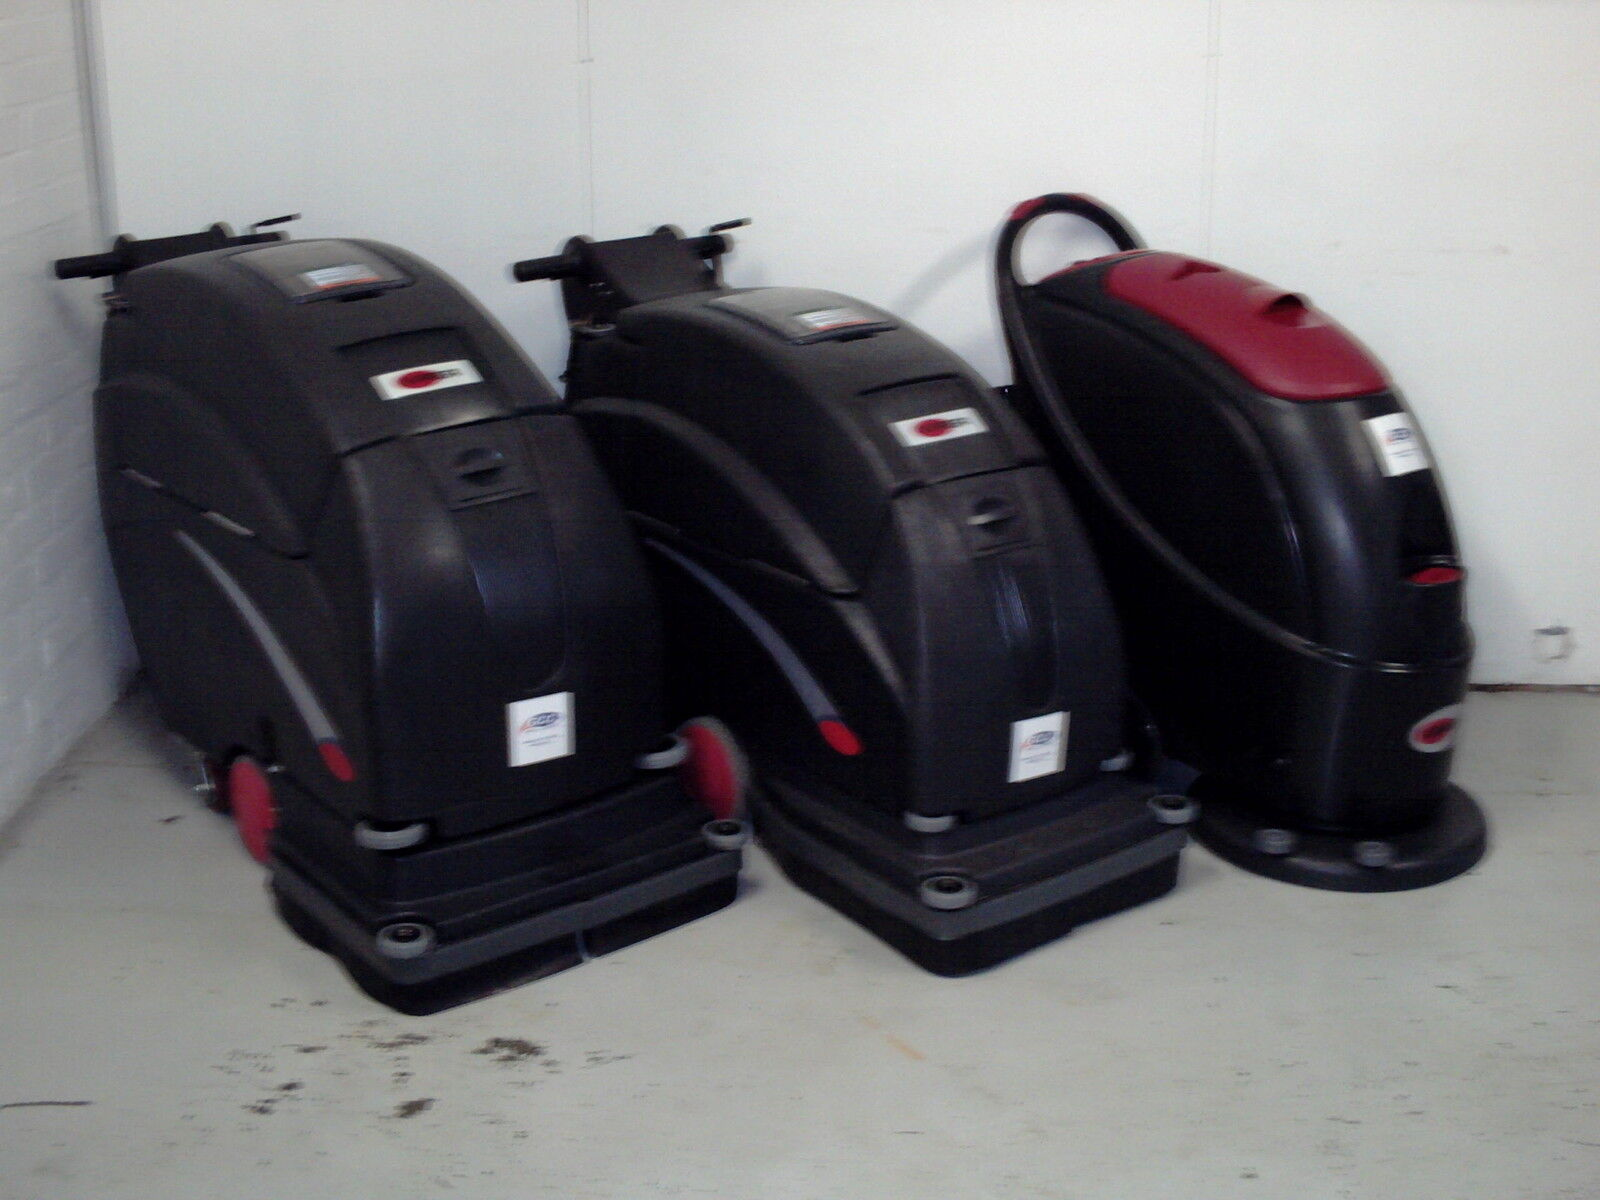 GCCSS2005 VIPER CLEANING EQUIPMENT